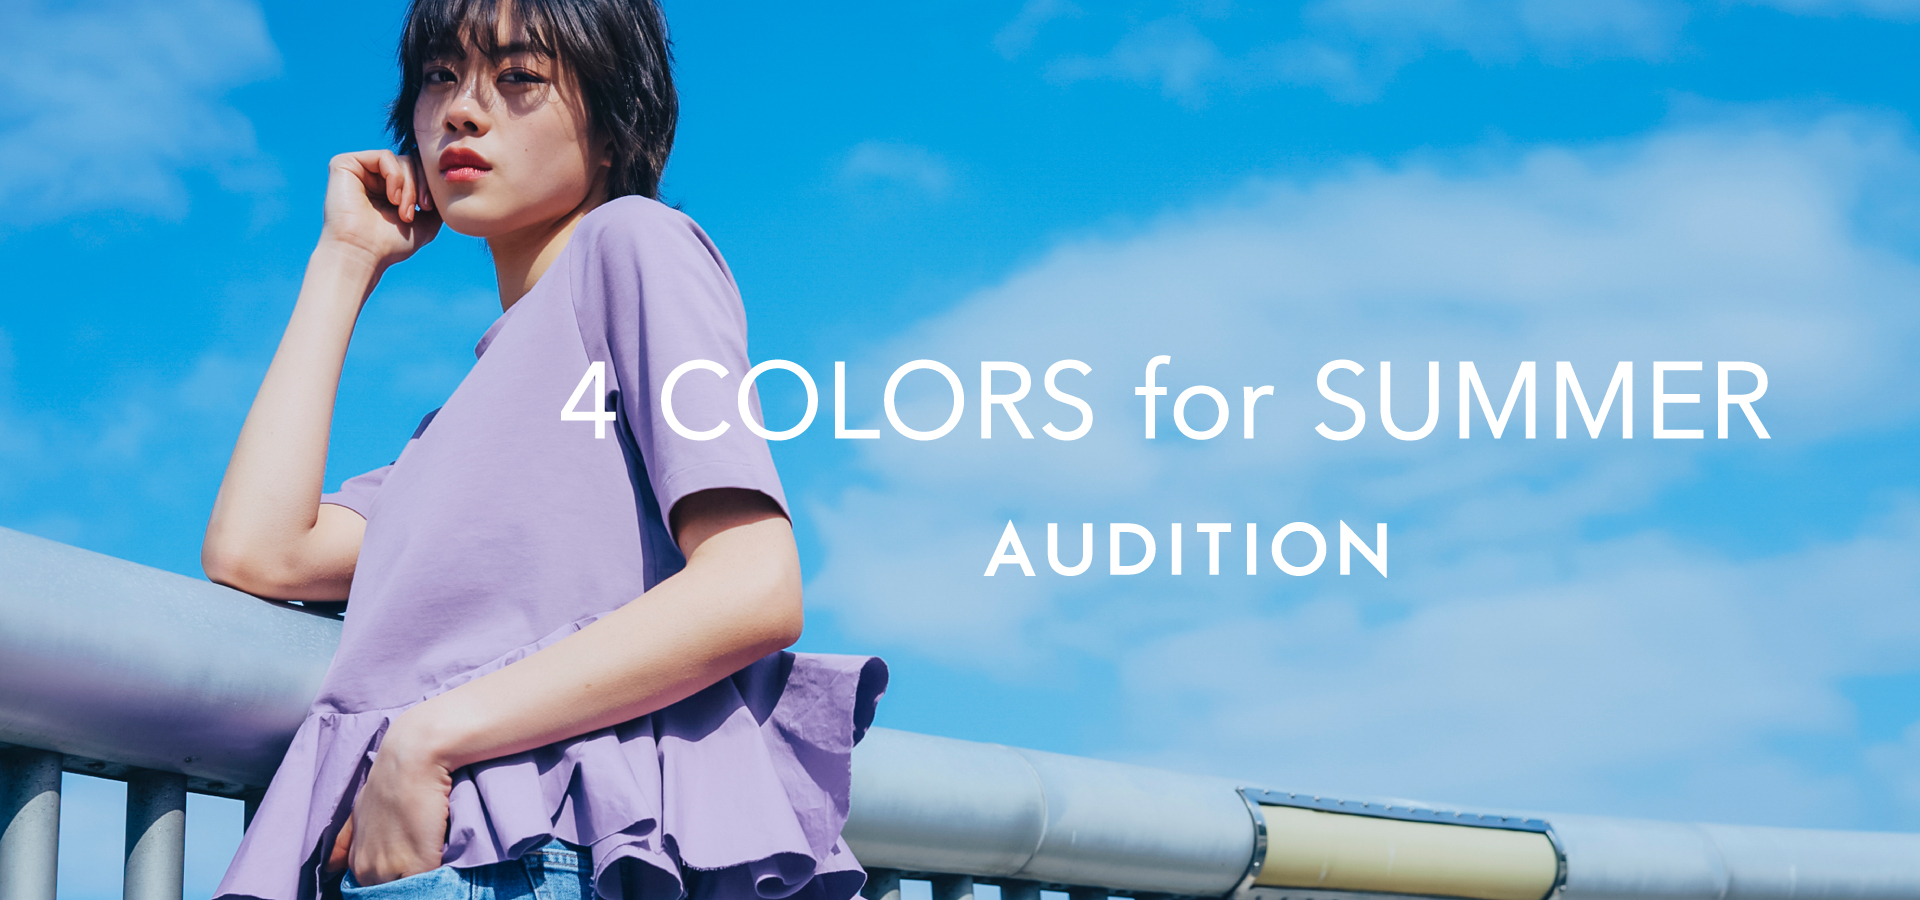 AUDITION 4 COLORS for SUMMER ALL ITEM